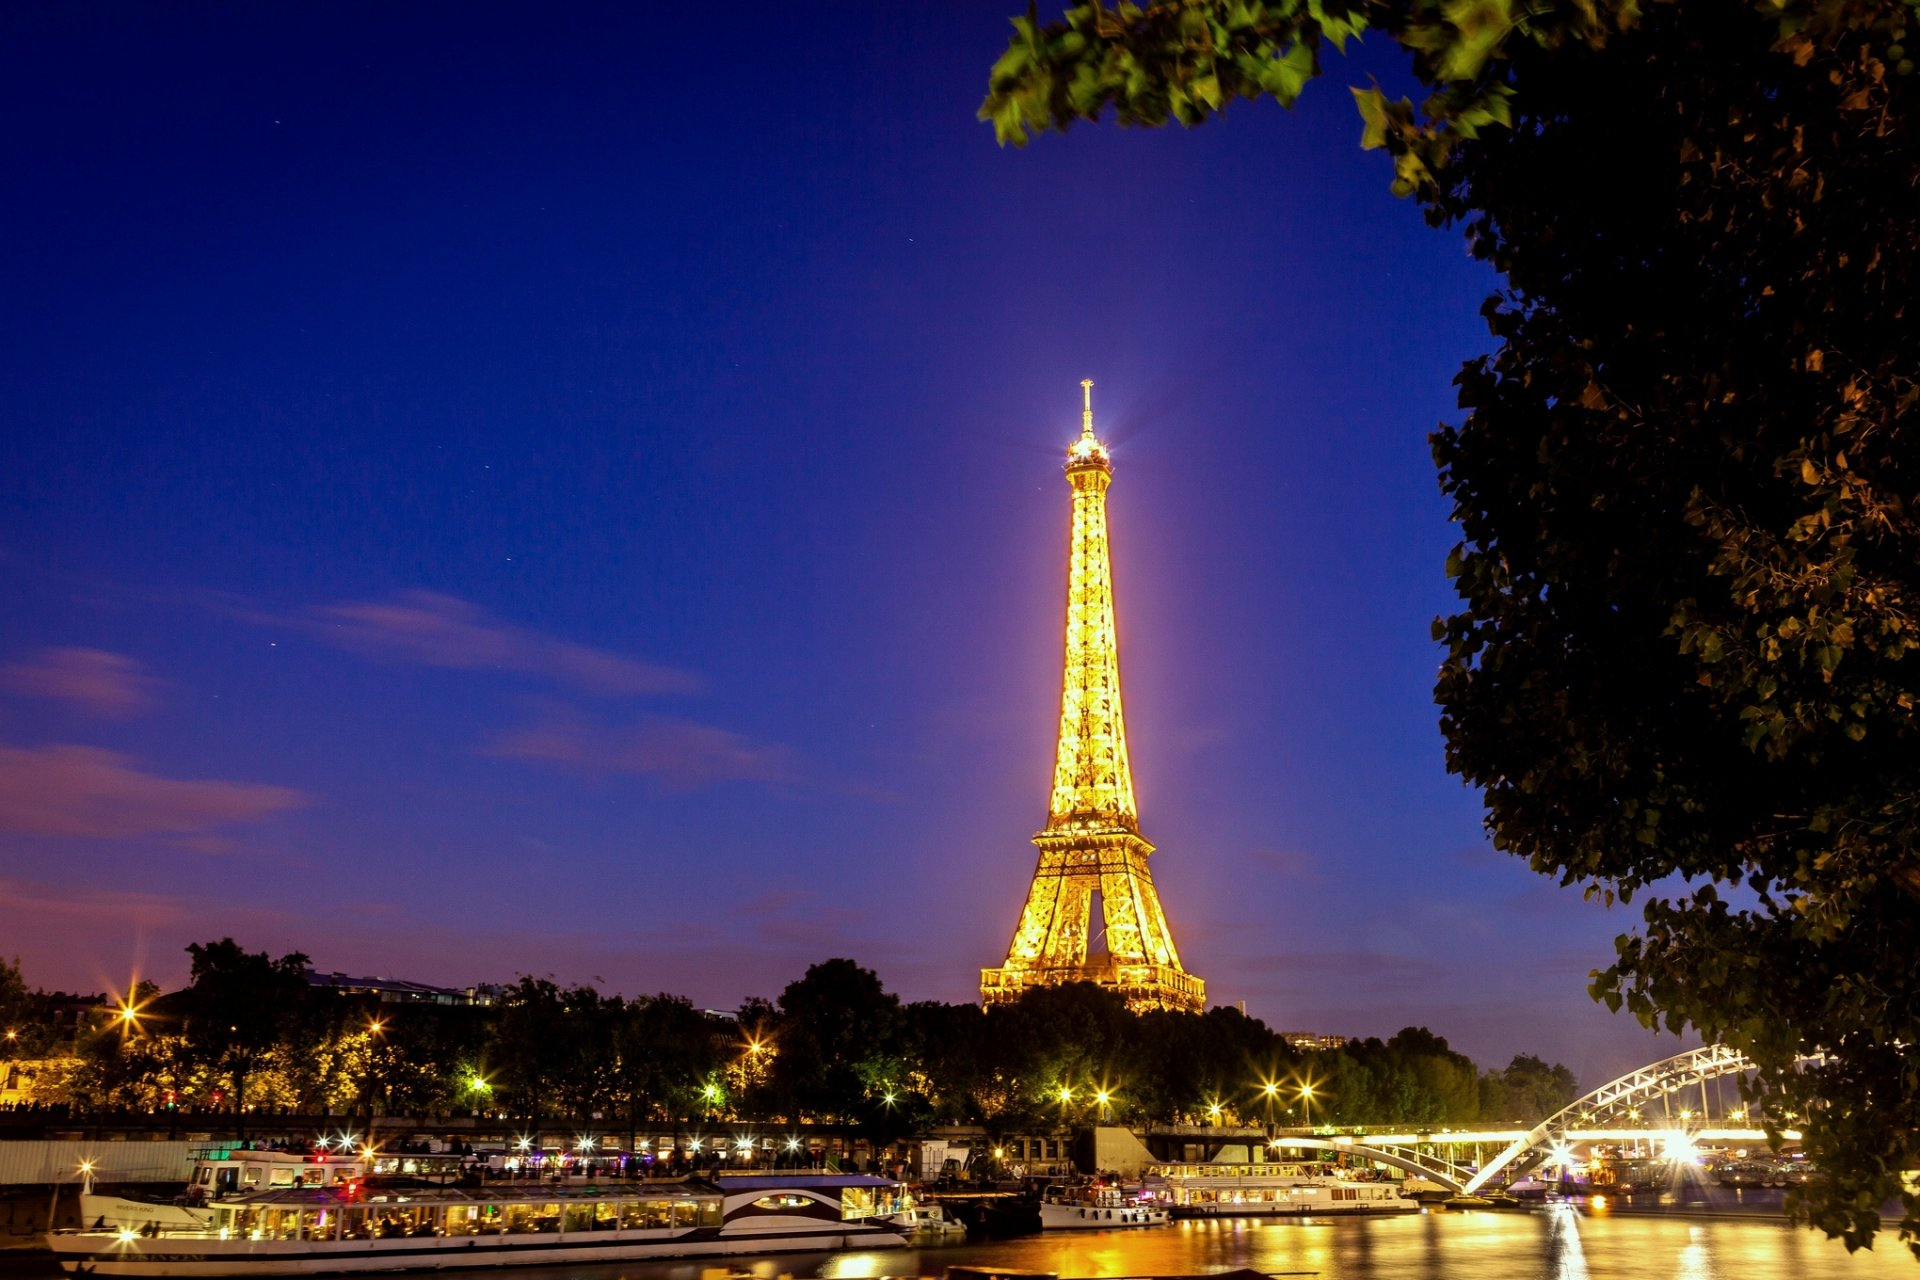 paris The best lighting design stores in Paris paris paris france france bridge river price eiffel tower la tour eiffel town night lights light lighting tree